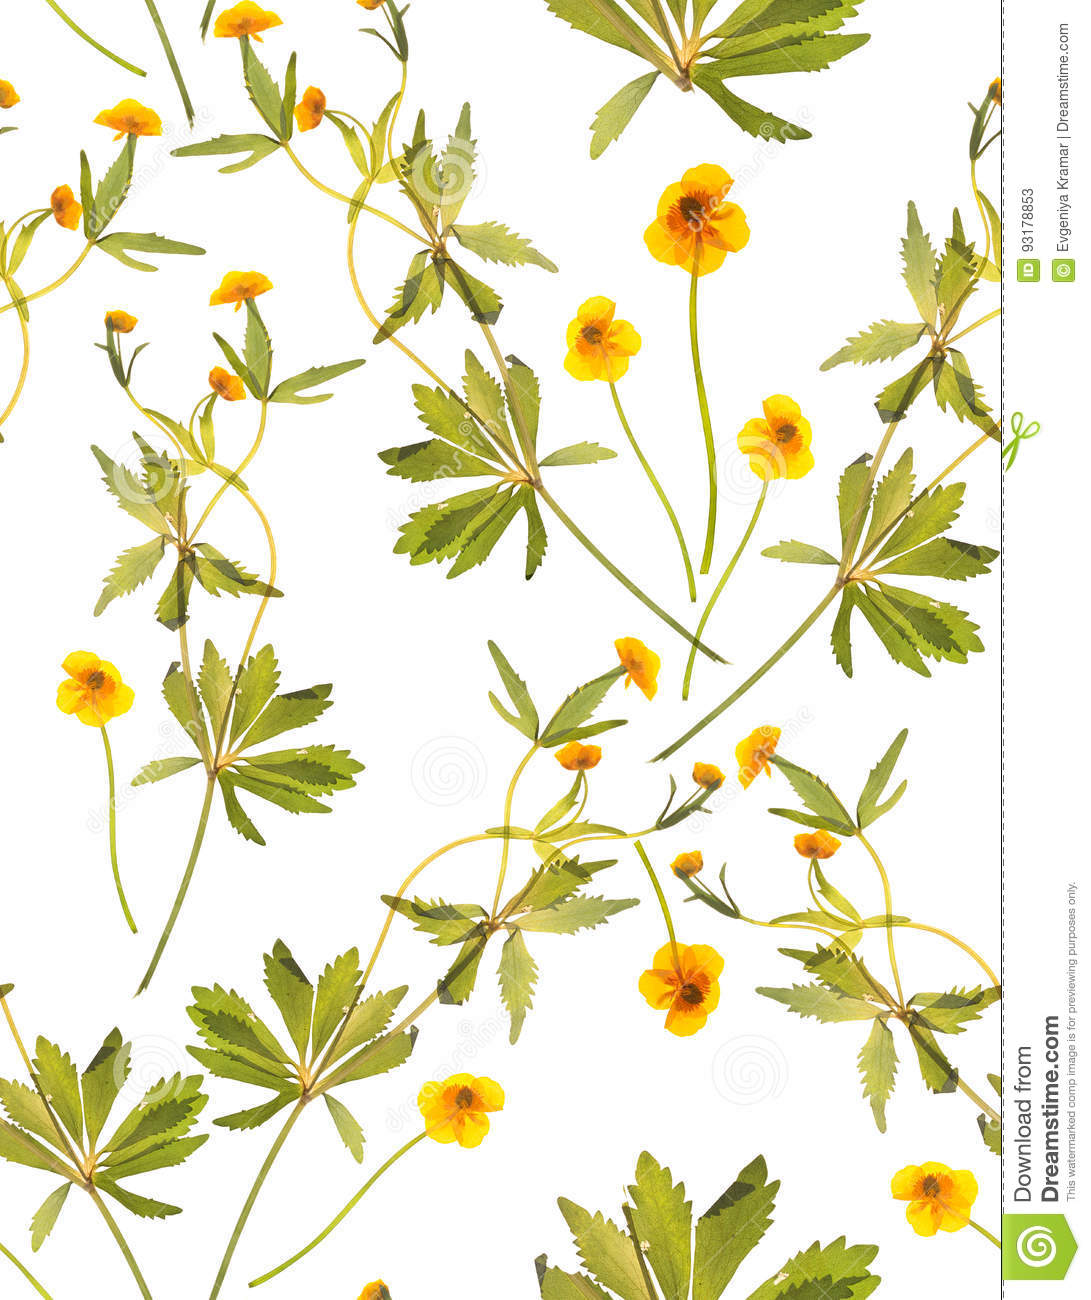 Seamless floral pattern with yellow flowers